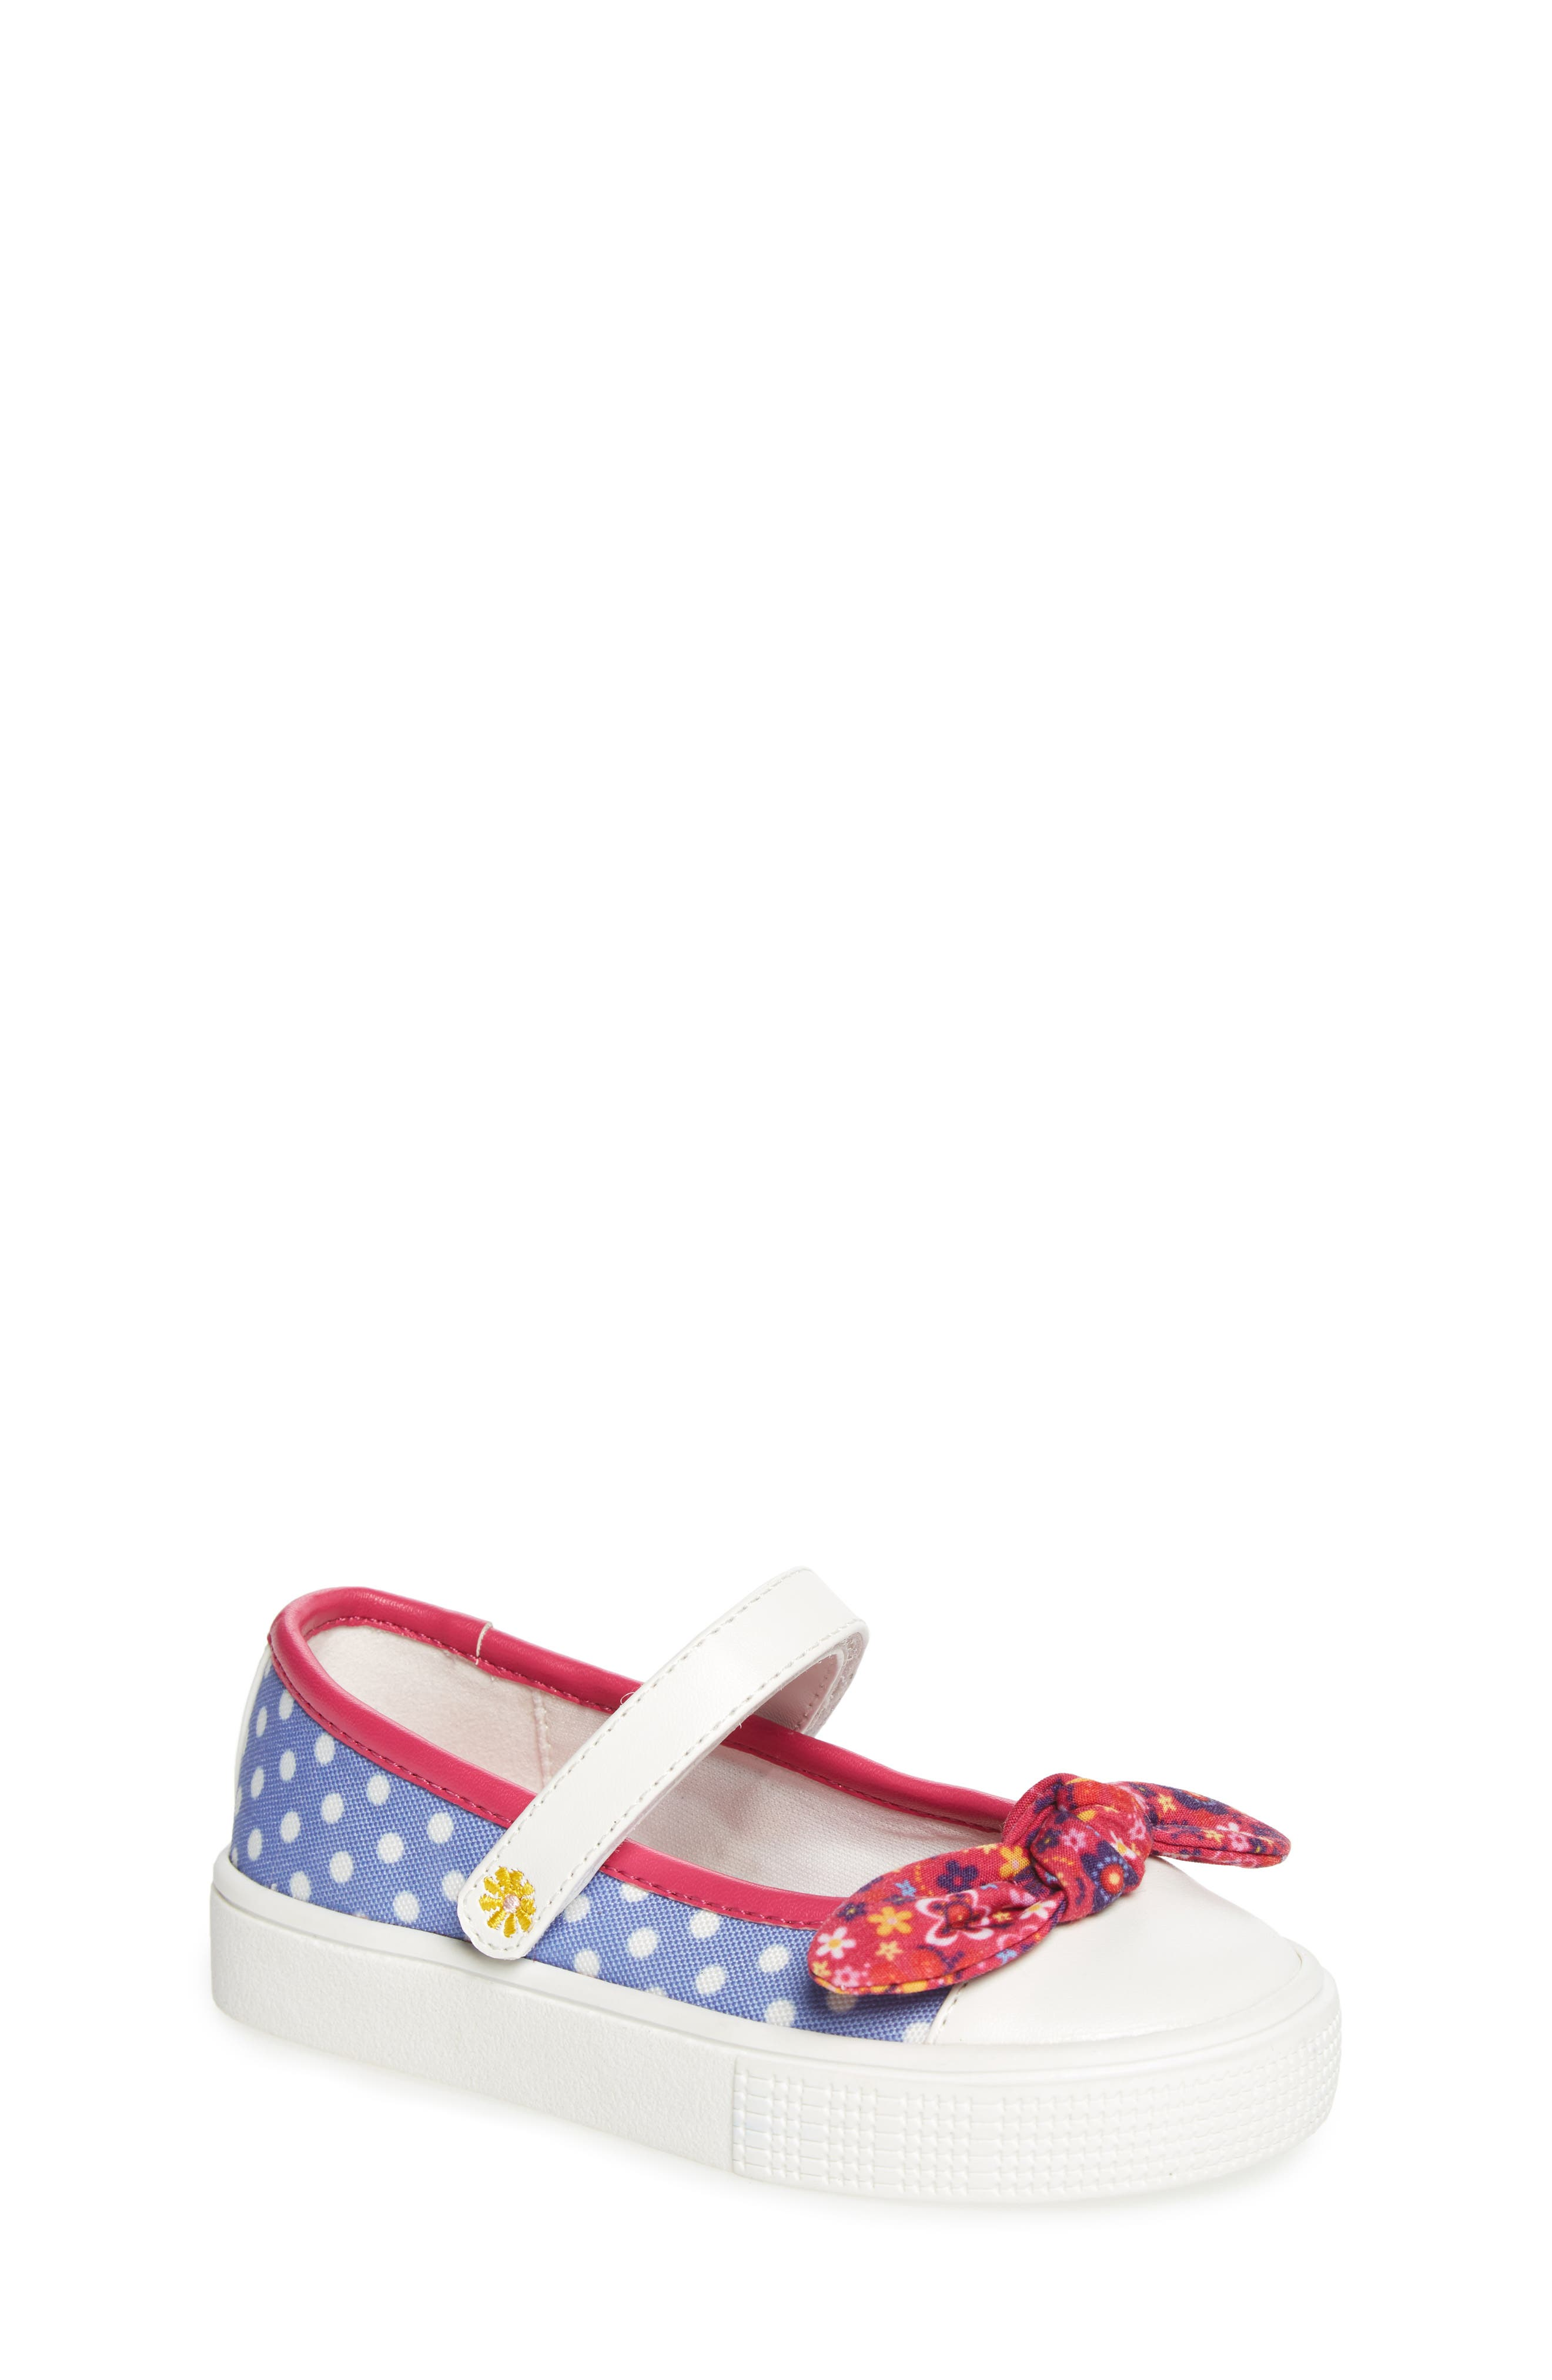 Main Image - WellieWishers from American Girl Kendall Mary Jane Sneaker (Walker, Toddler, Little Kid & Big Kid)